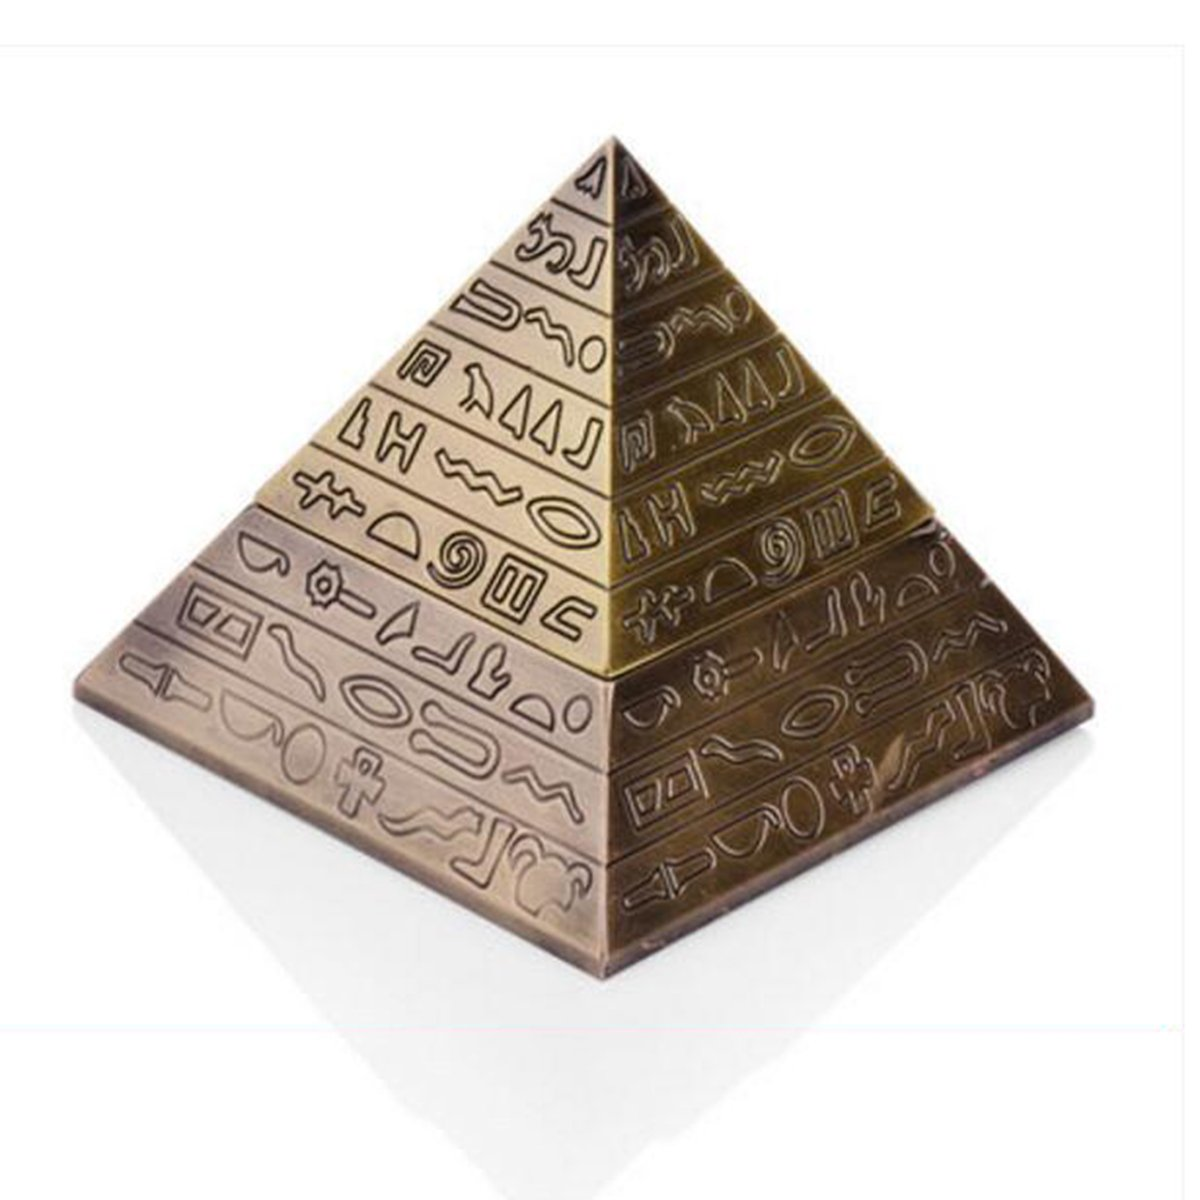 European retro Ashtray Creative Pyramid Design Engraving Clamshell Fashion Classic Personality Decoration Cuivre Antique